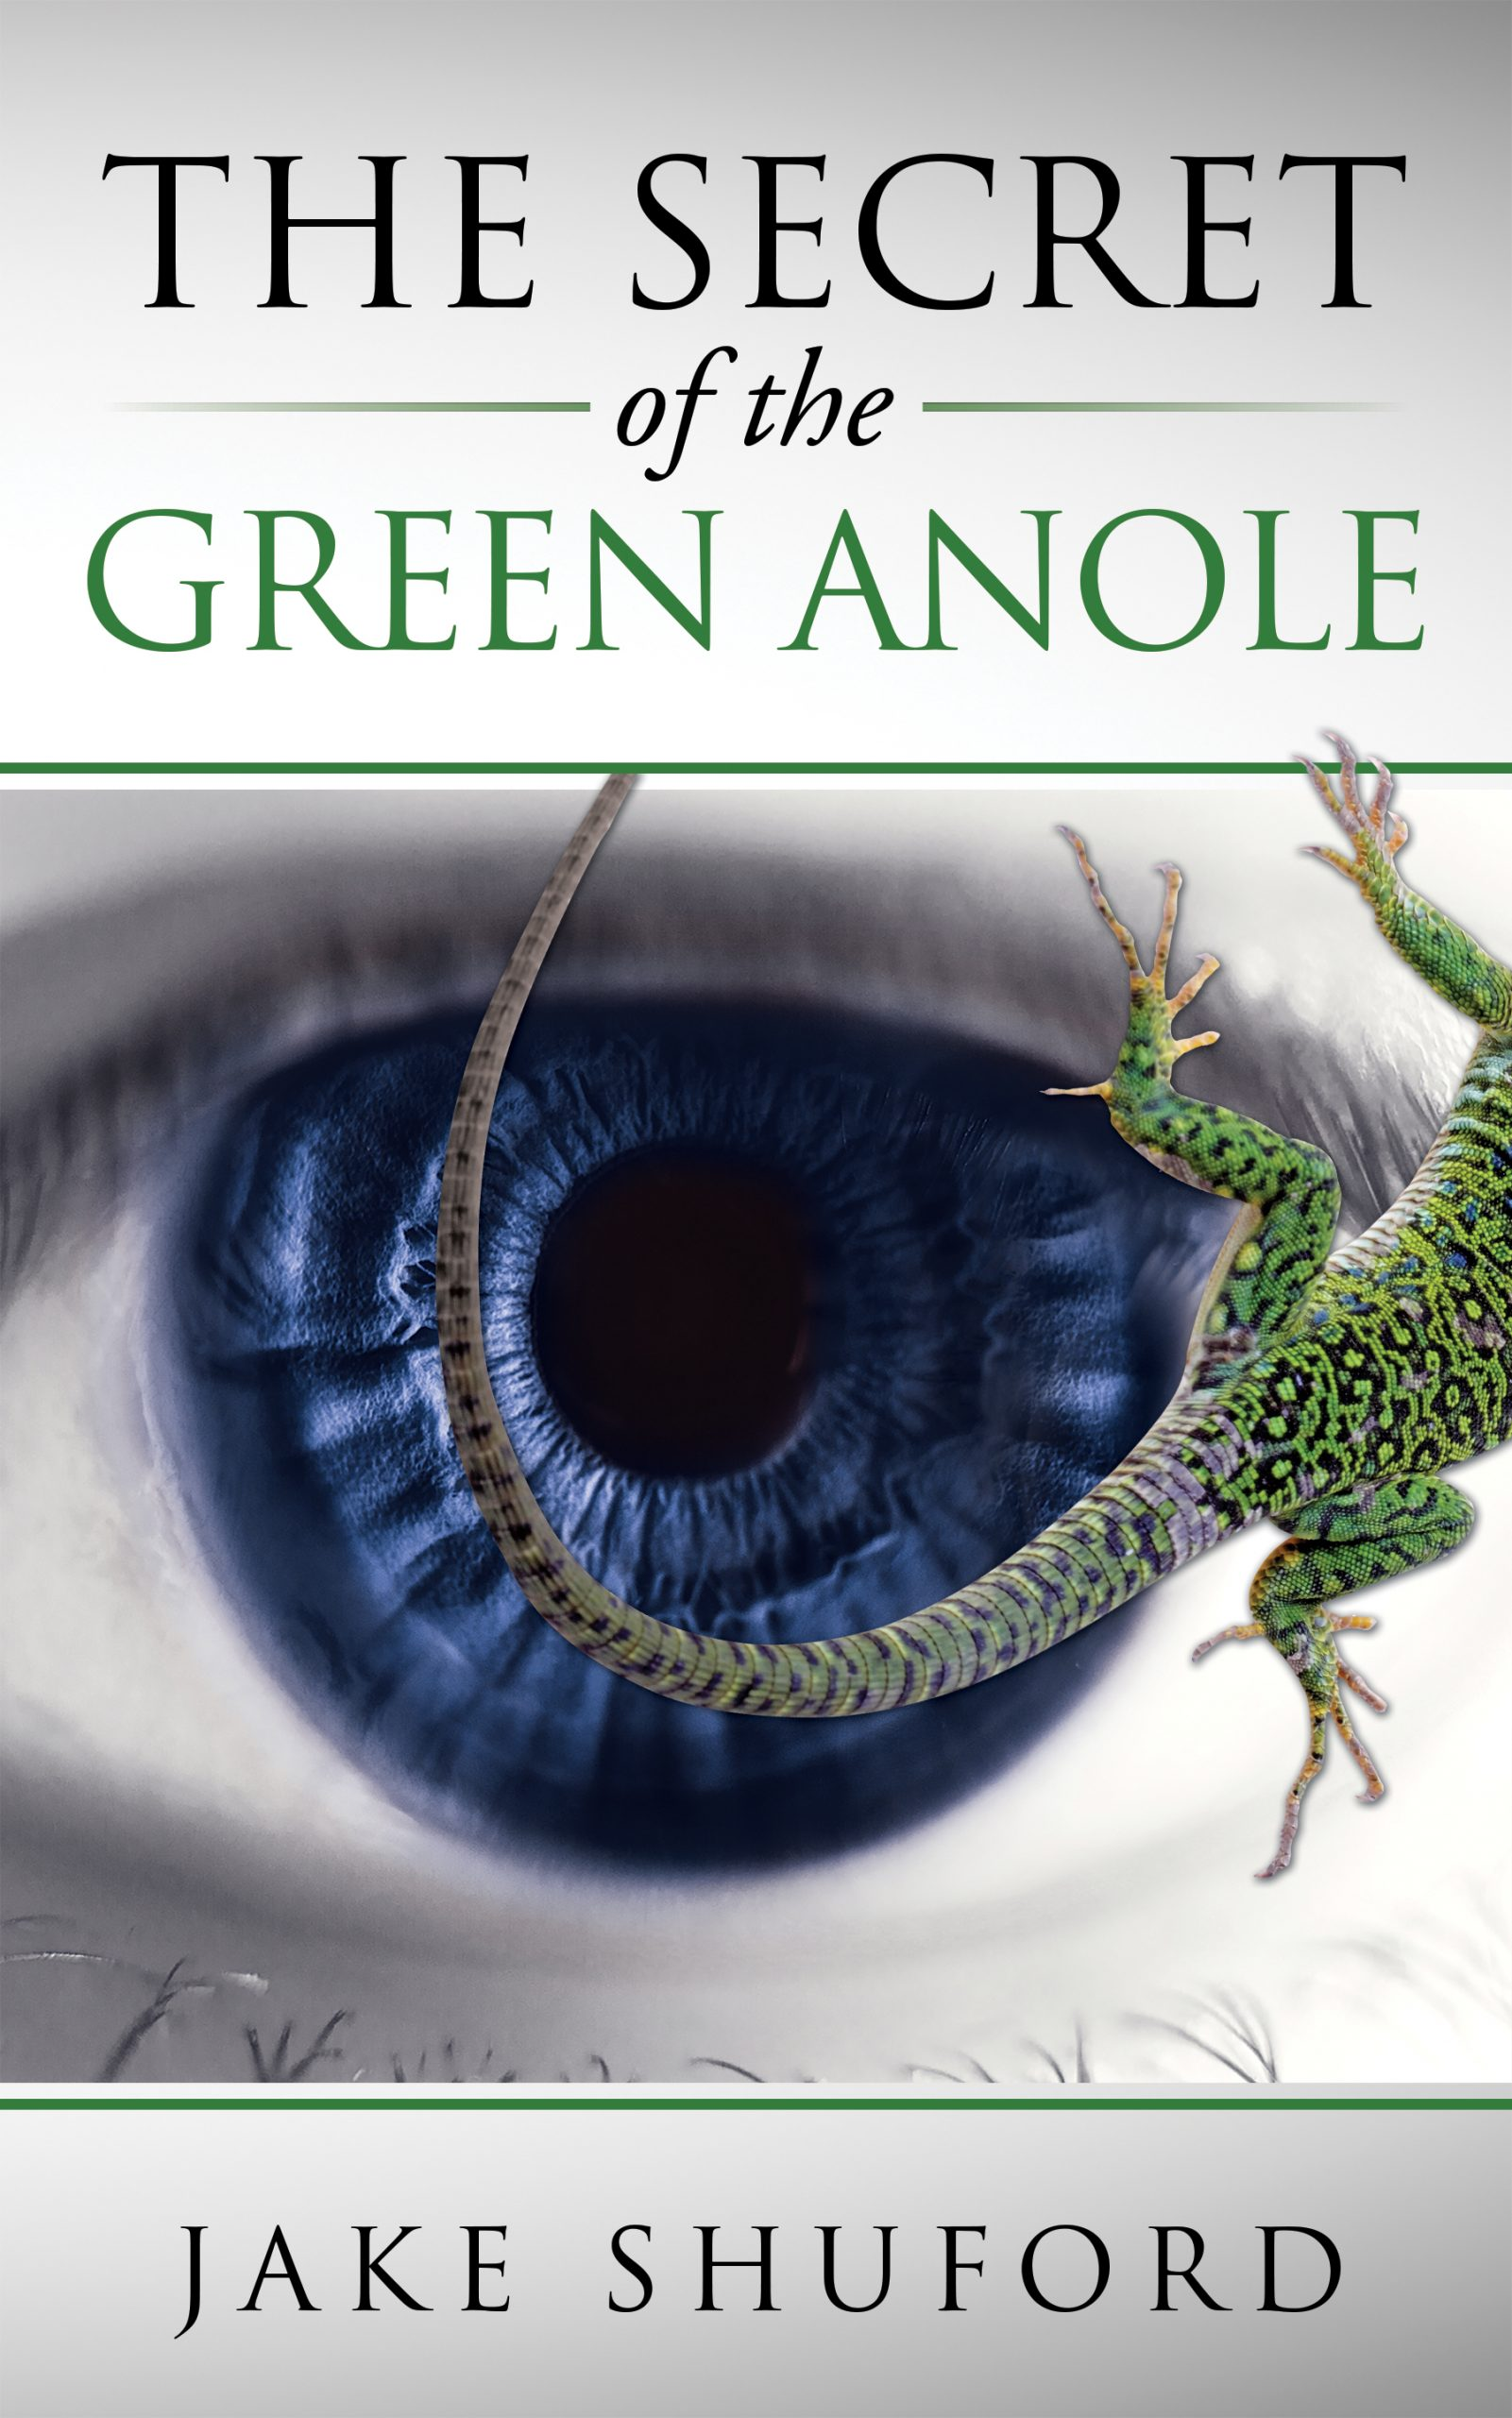 The Secret of the Green Anole by Jake Shuford